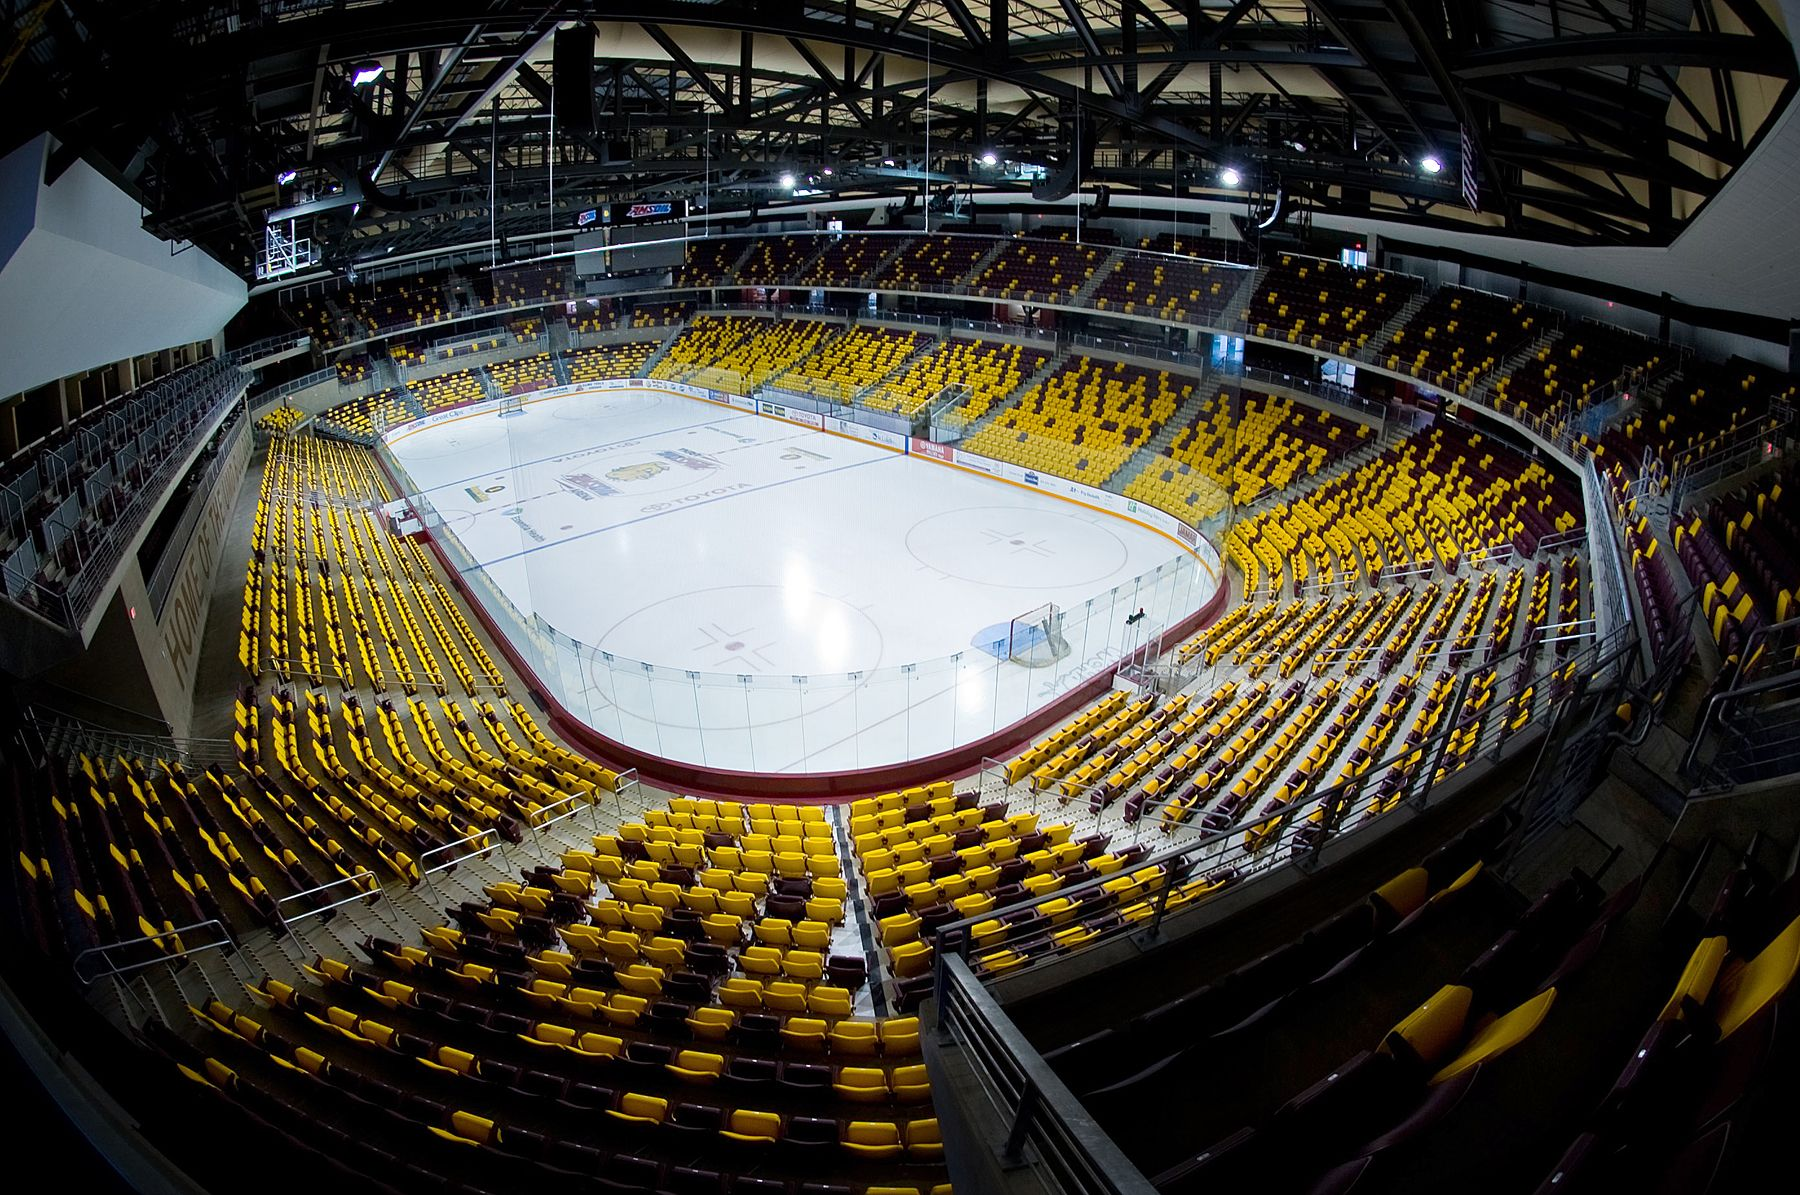 Amsoil Arena Arena View Amsoil Arena Opened In 2010 And Seats